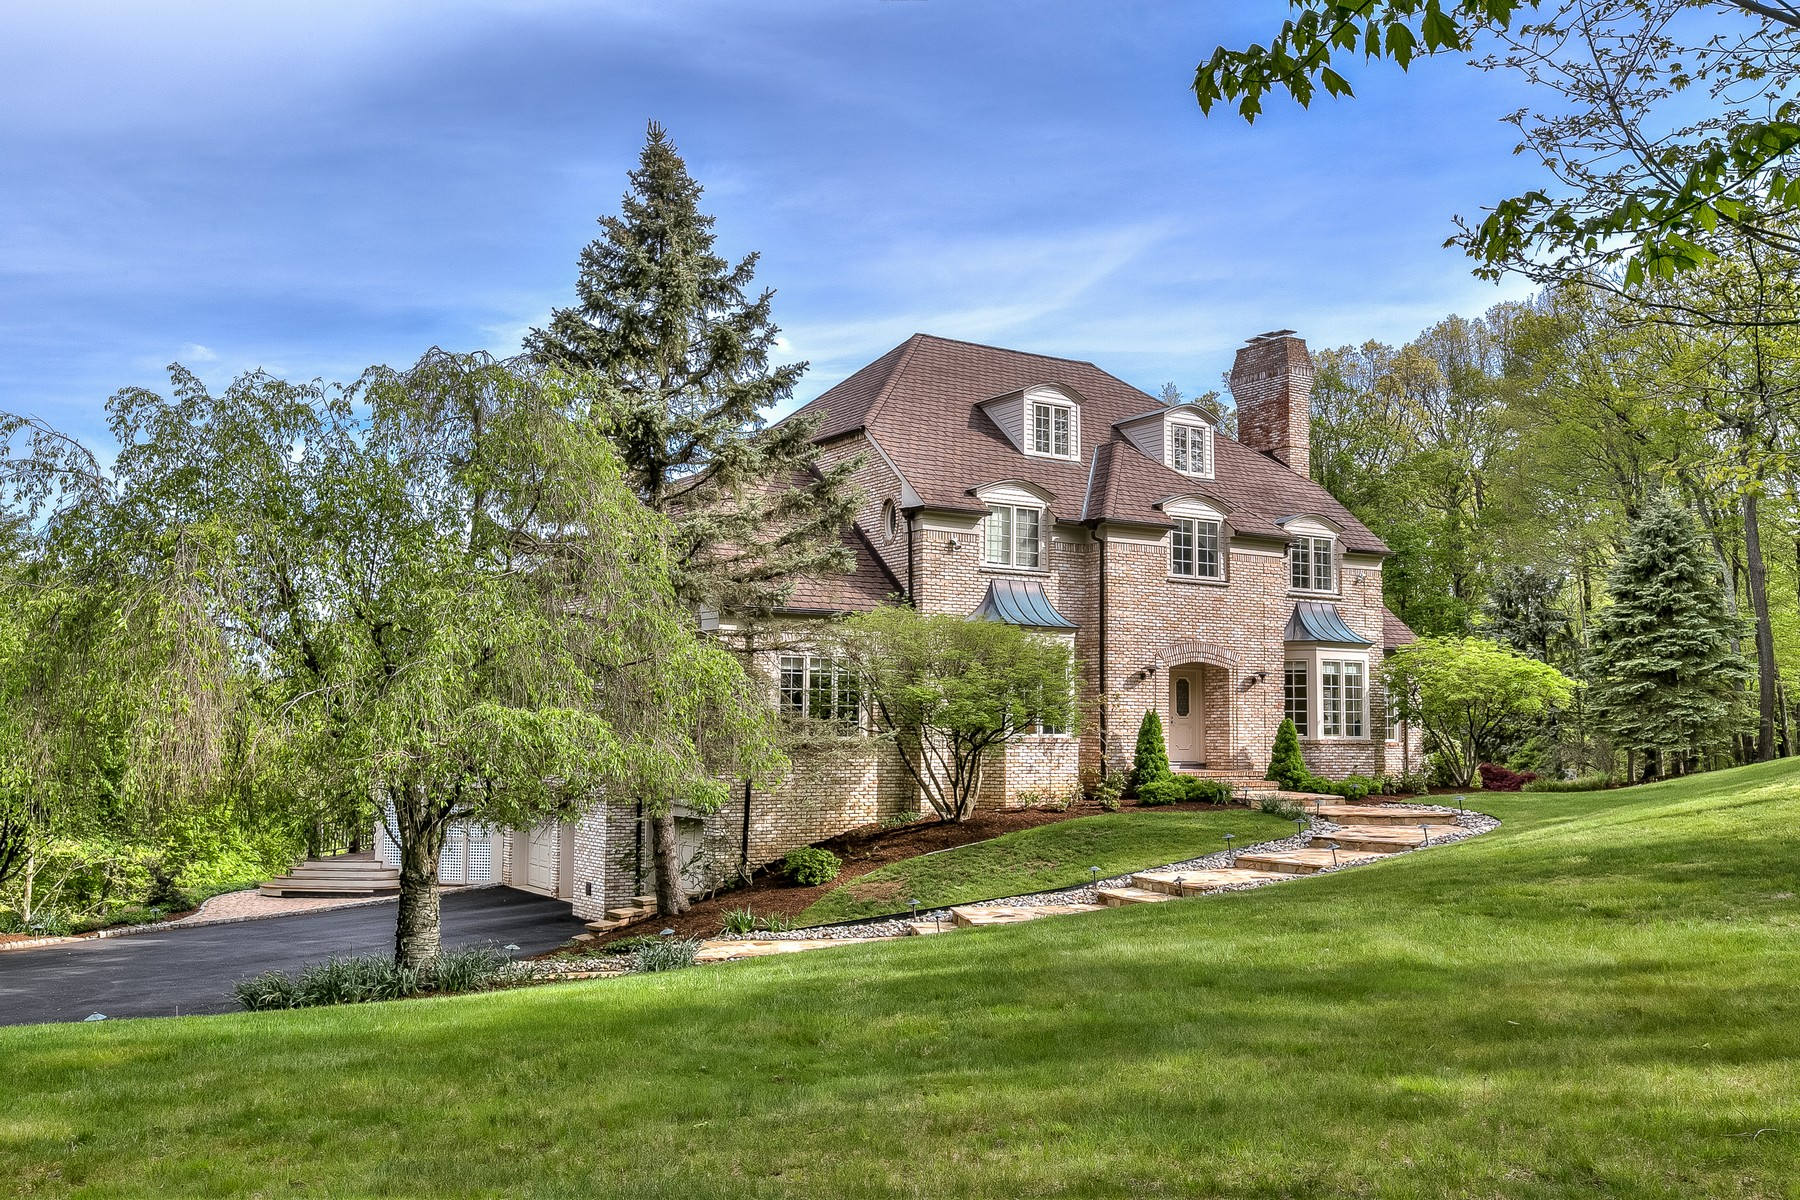 Single Family Home for Sale at Elegant Colonial 87 Skyline Drive Bernardsville, New Jersey 07924 United States